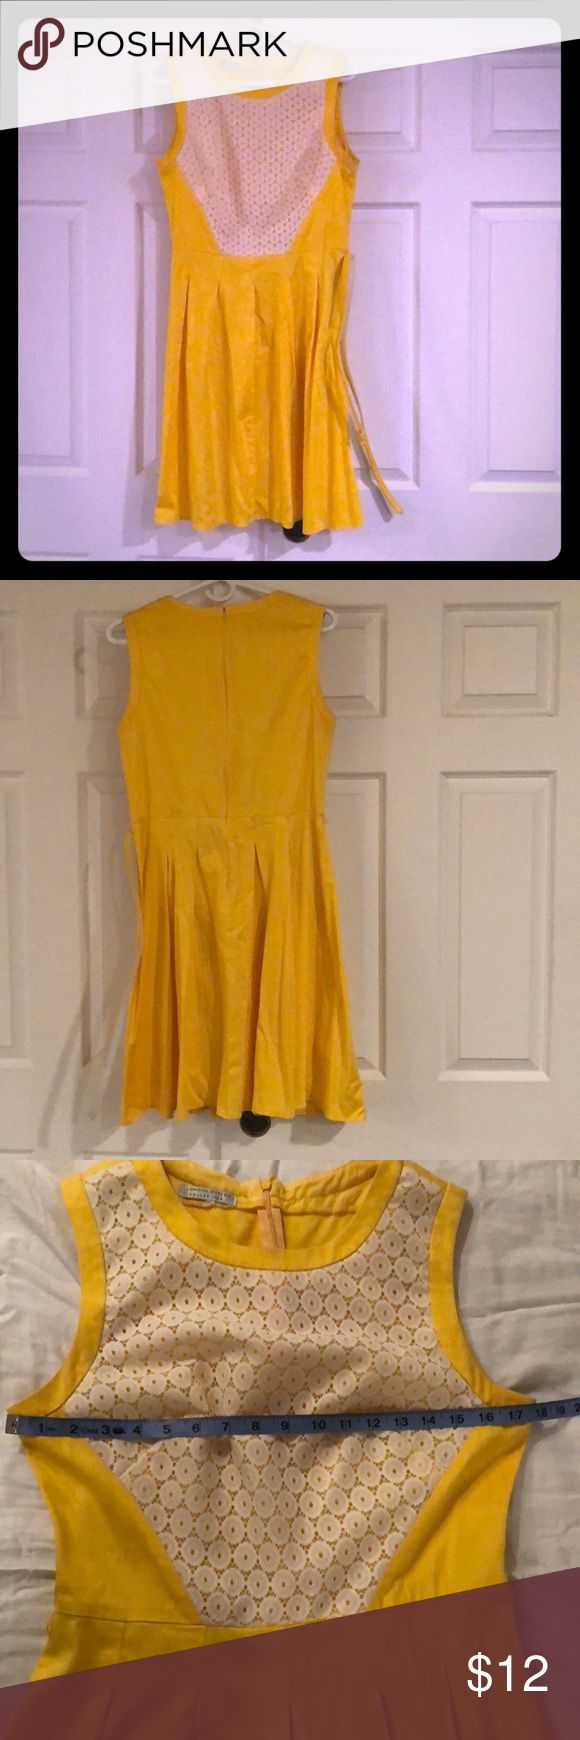 London Styles yellow Dress with Belt Beautiful yellow dress. Comes with belt. Rock them with heels for a night out or with flats for a day in the office. London Style Dresses Midi